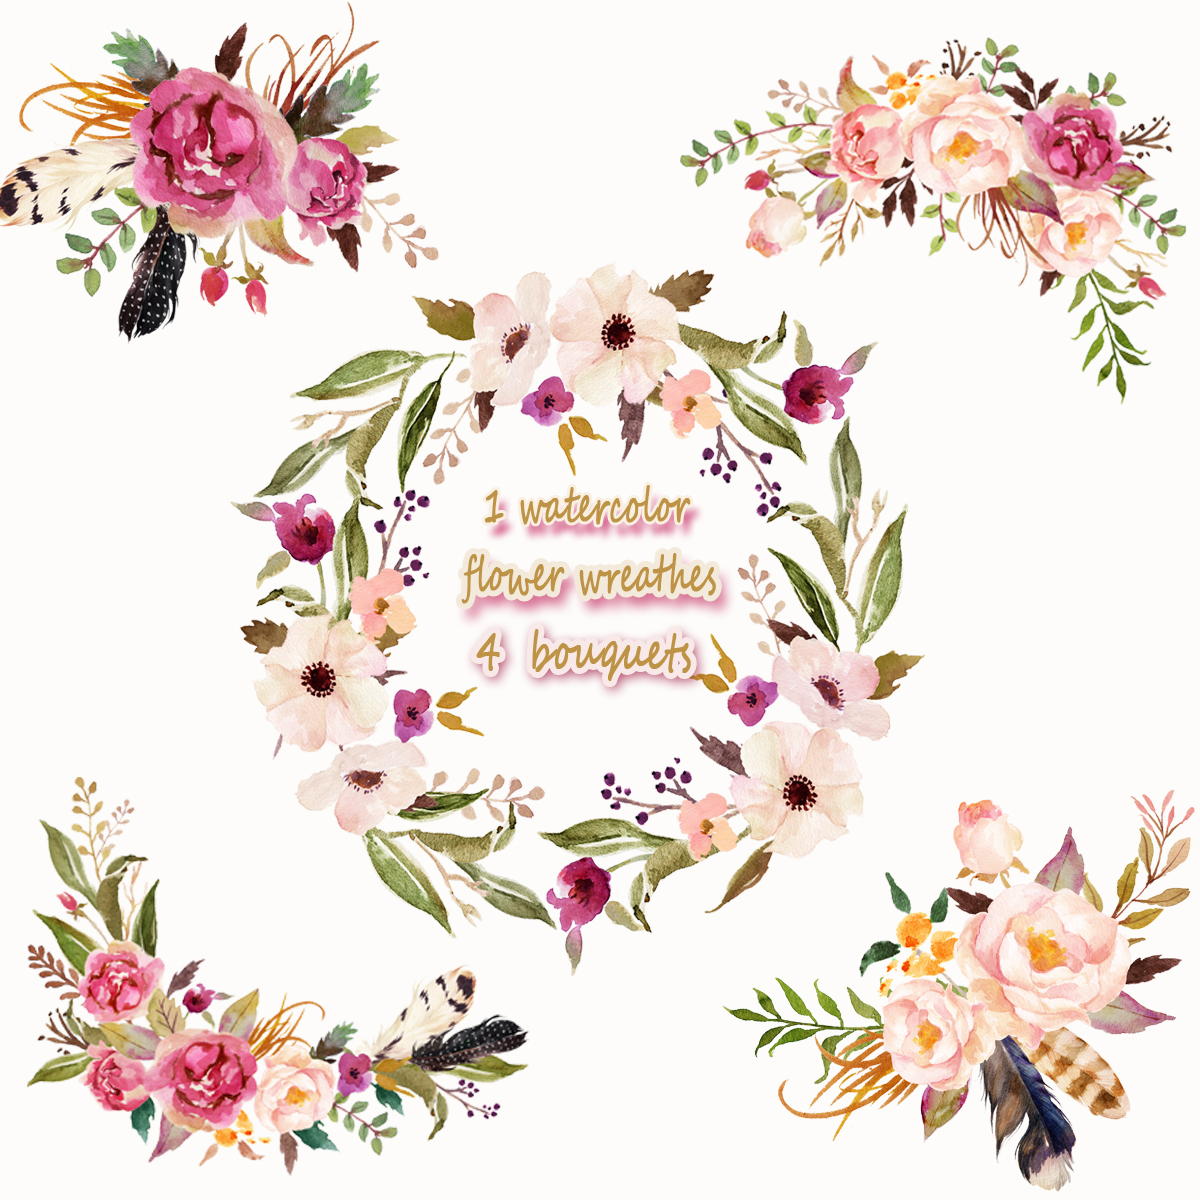 1 Watercolor Flower Wreathes Amp 4 Flower Bouquets,floral